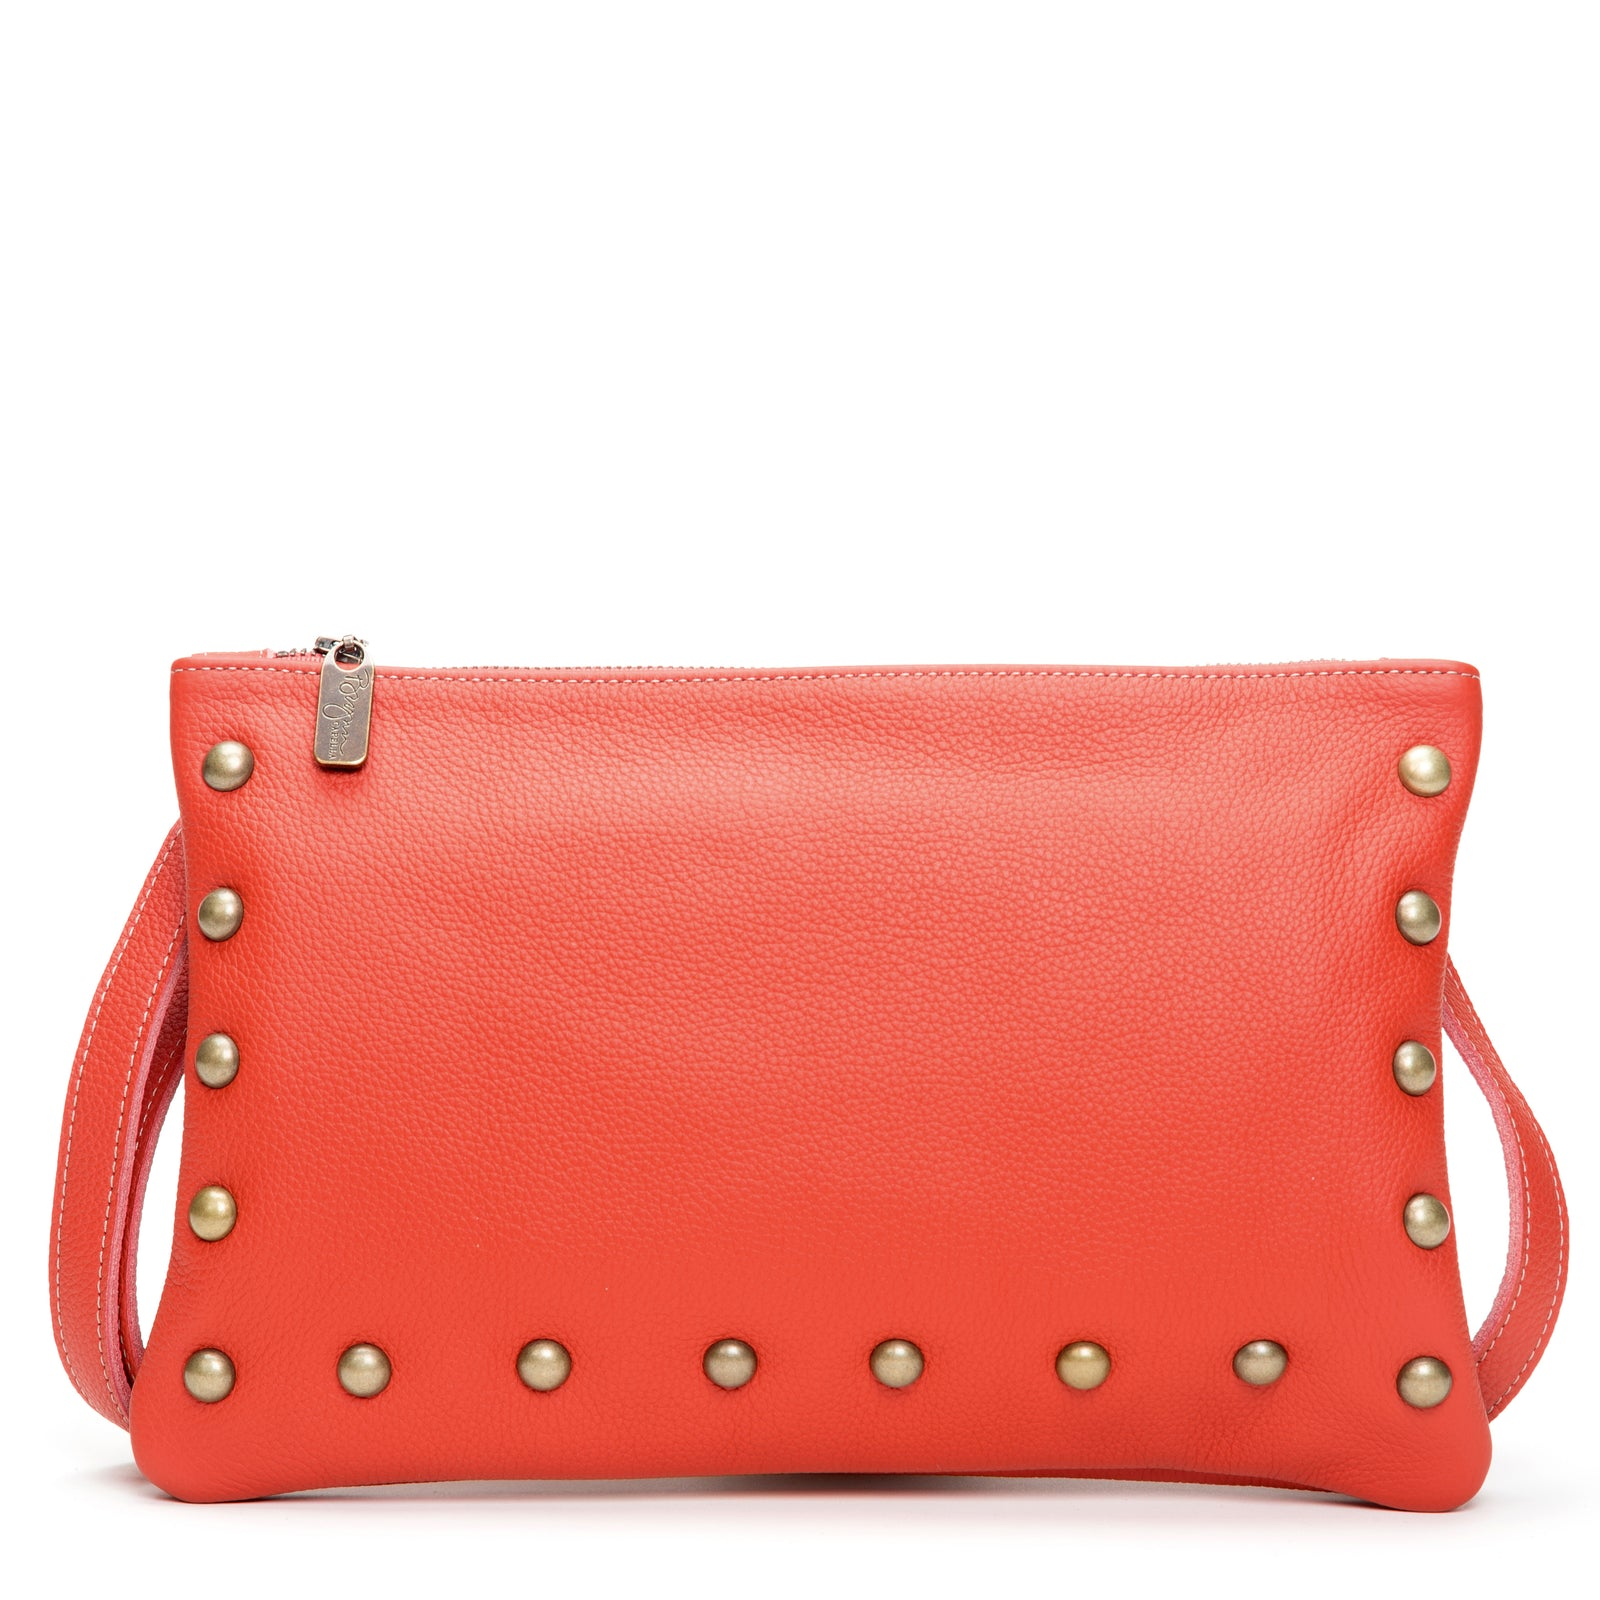 Nikki Clutch/Crossbody - Lobster Tail - Brynn Capella, Small Crossbody